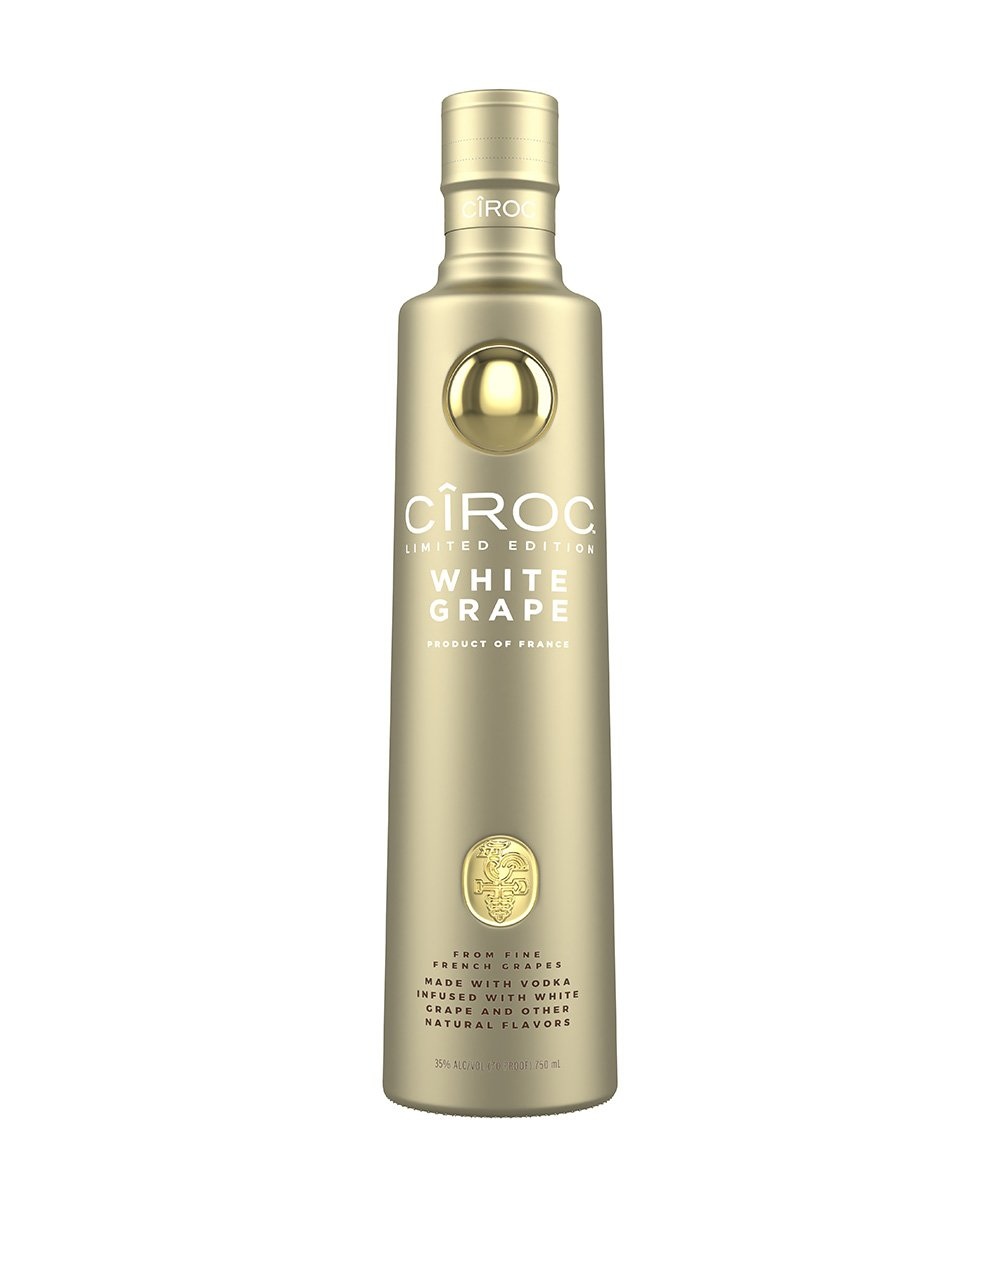 Ciroc White Grape Vodka